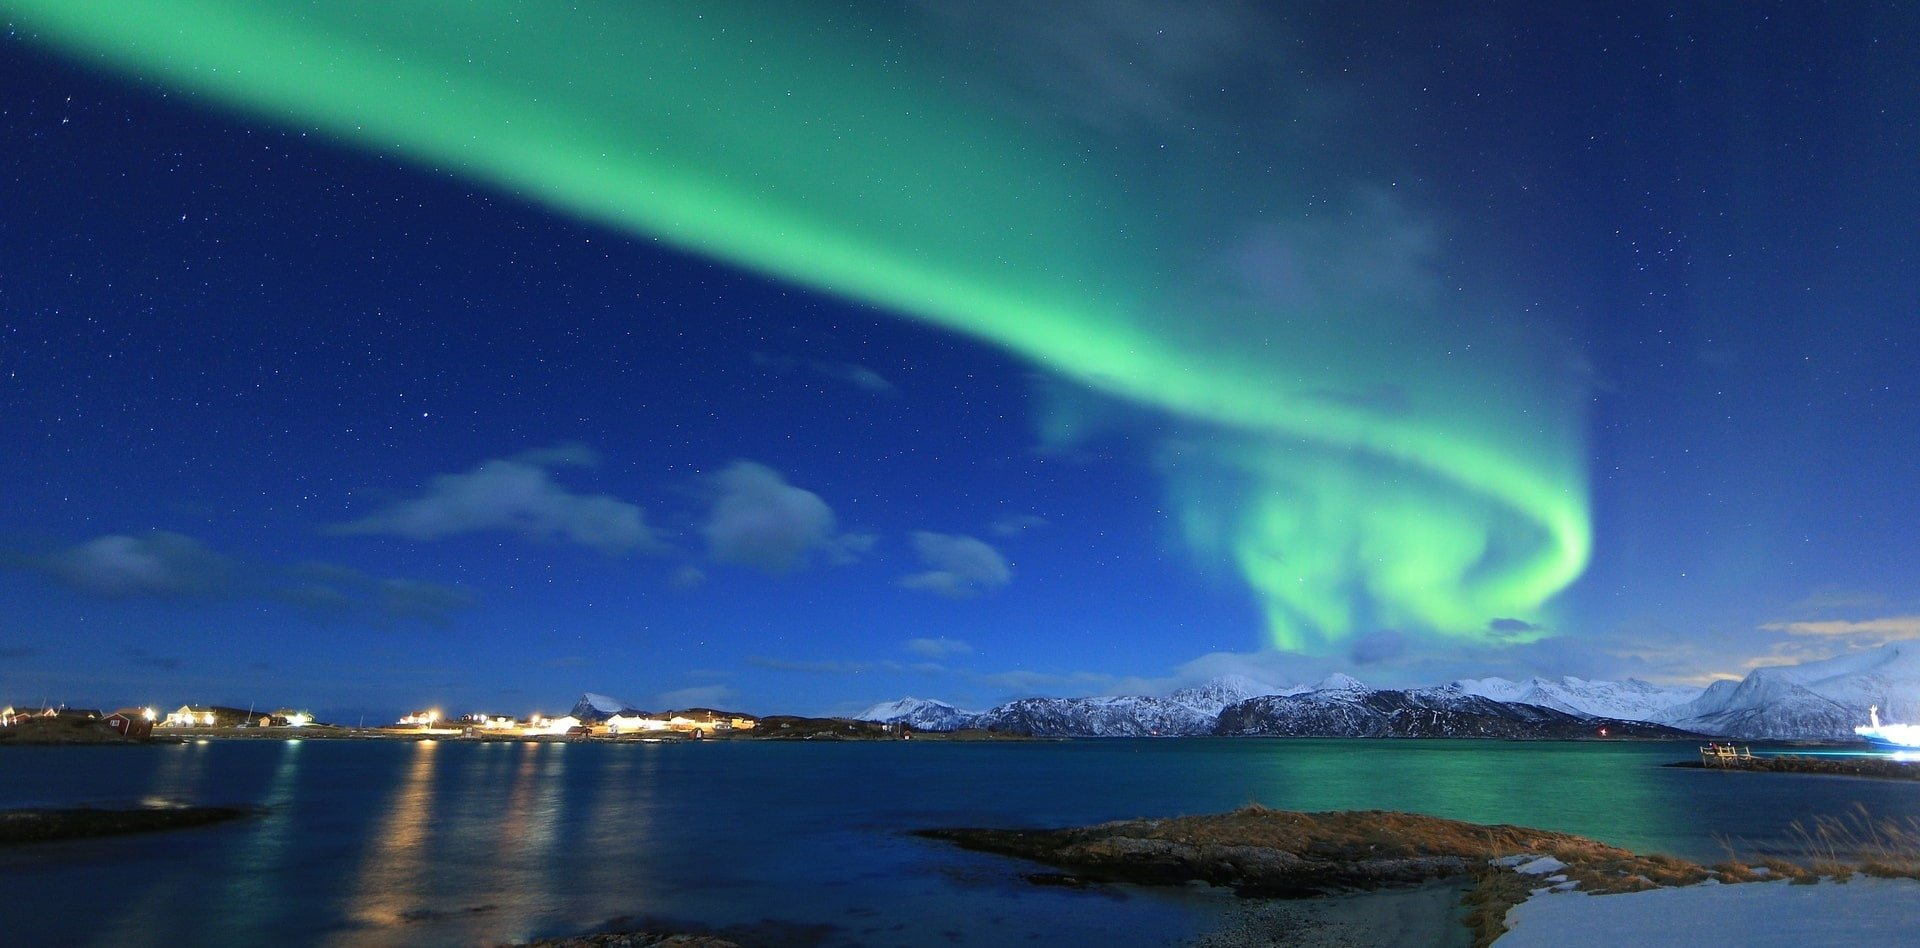 Private tour to Northern Lights in Norway